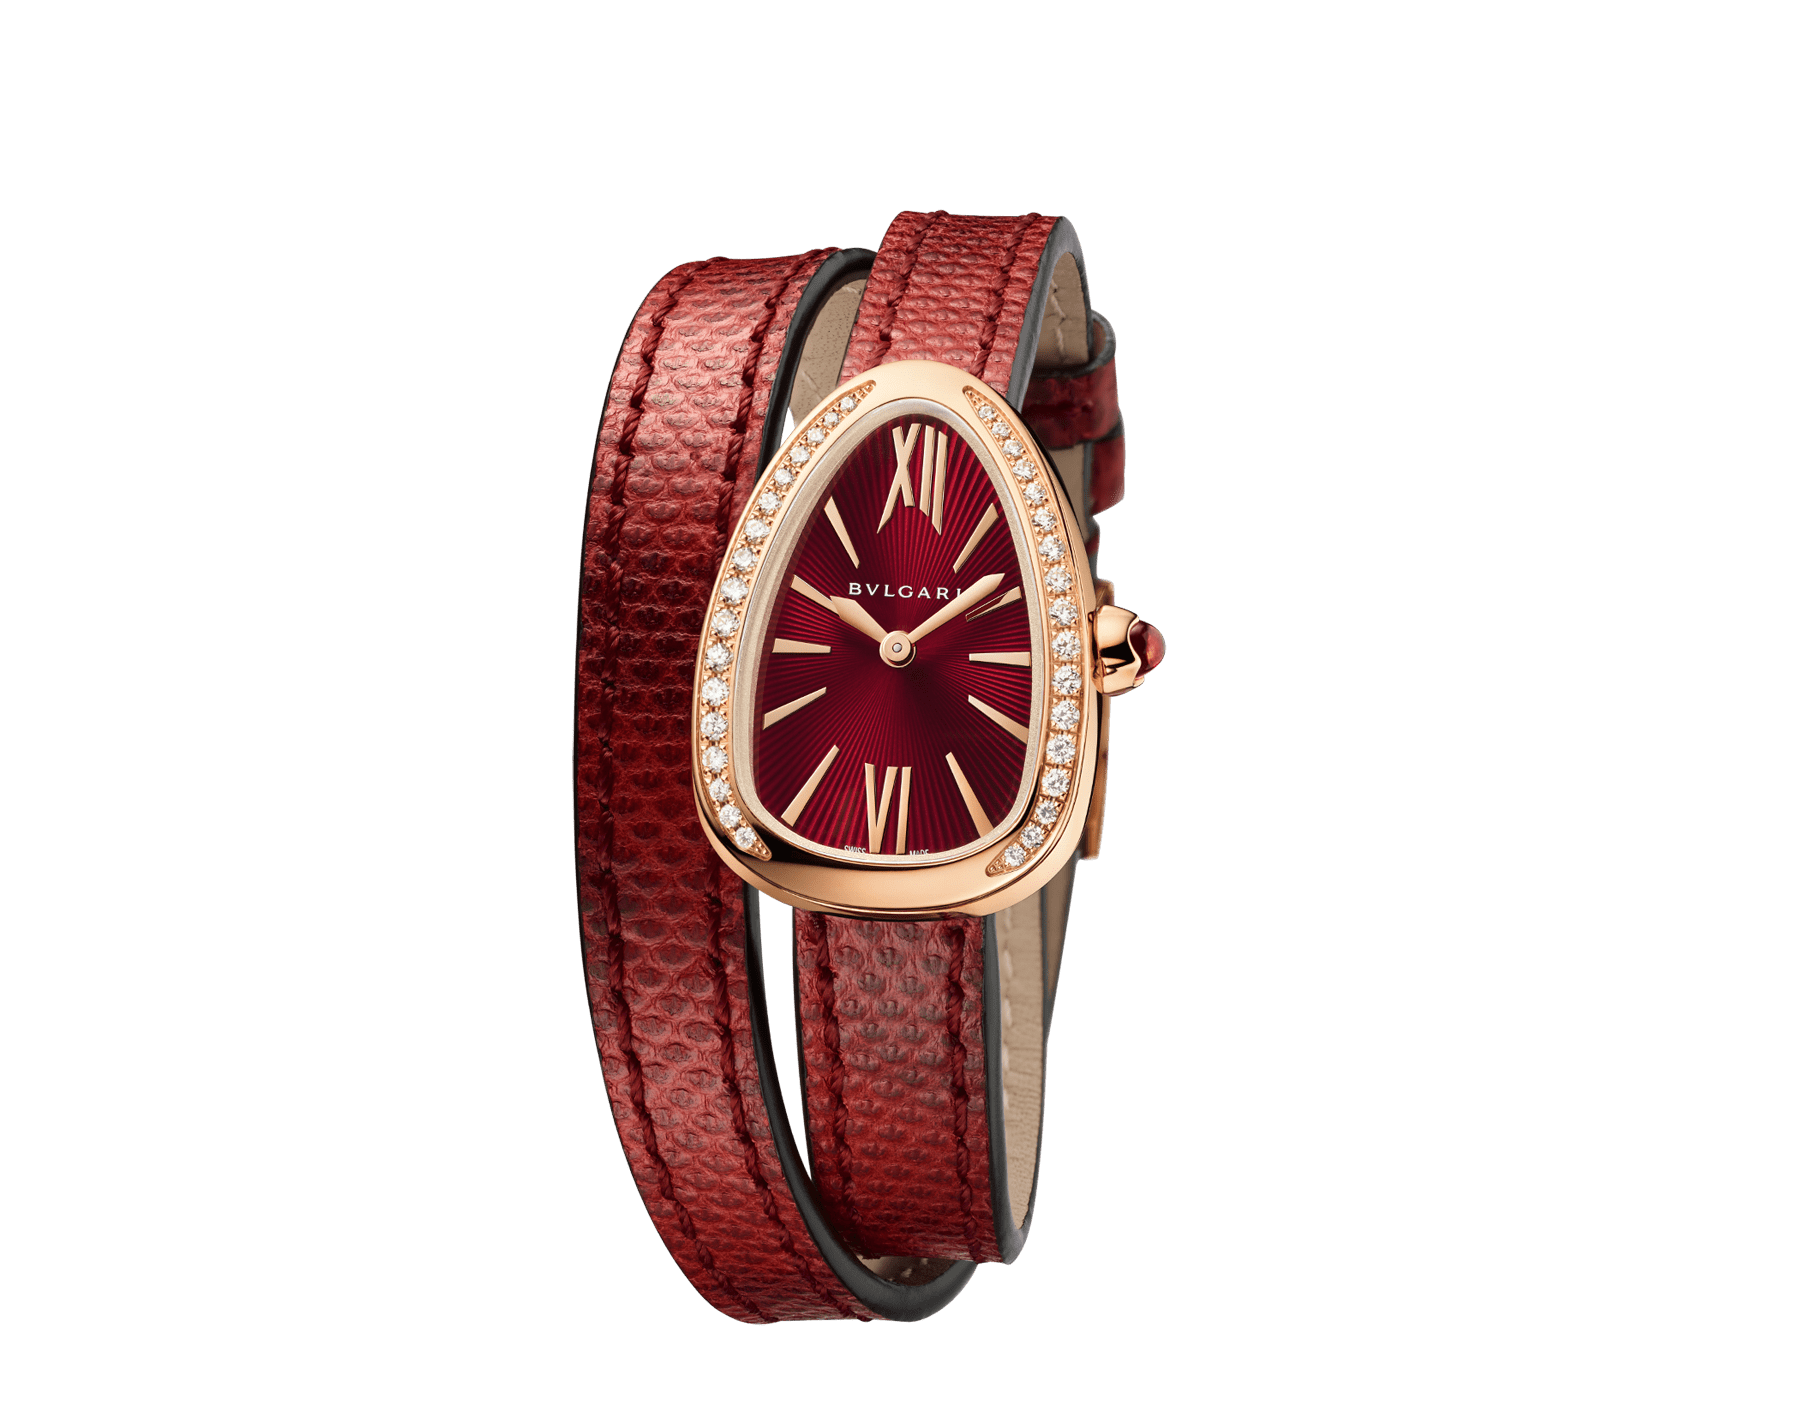 Serpenti watch with 18 kt rose gold case set with brilliant cut diamonds, red lacquered dial and interchangeable double spiral bracelet in red karung leather. 102730 image 2